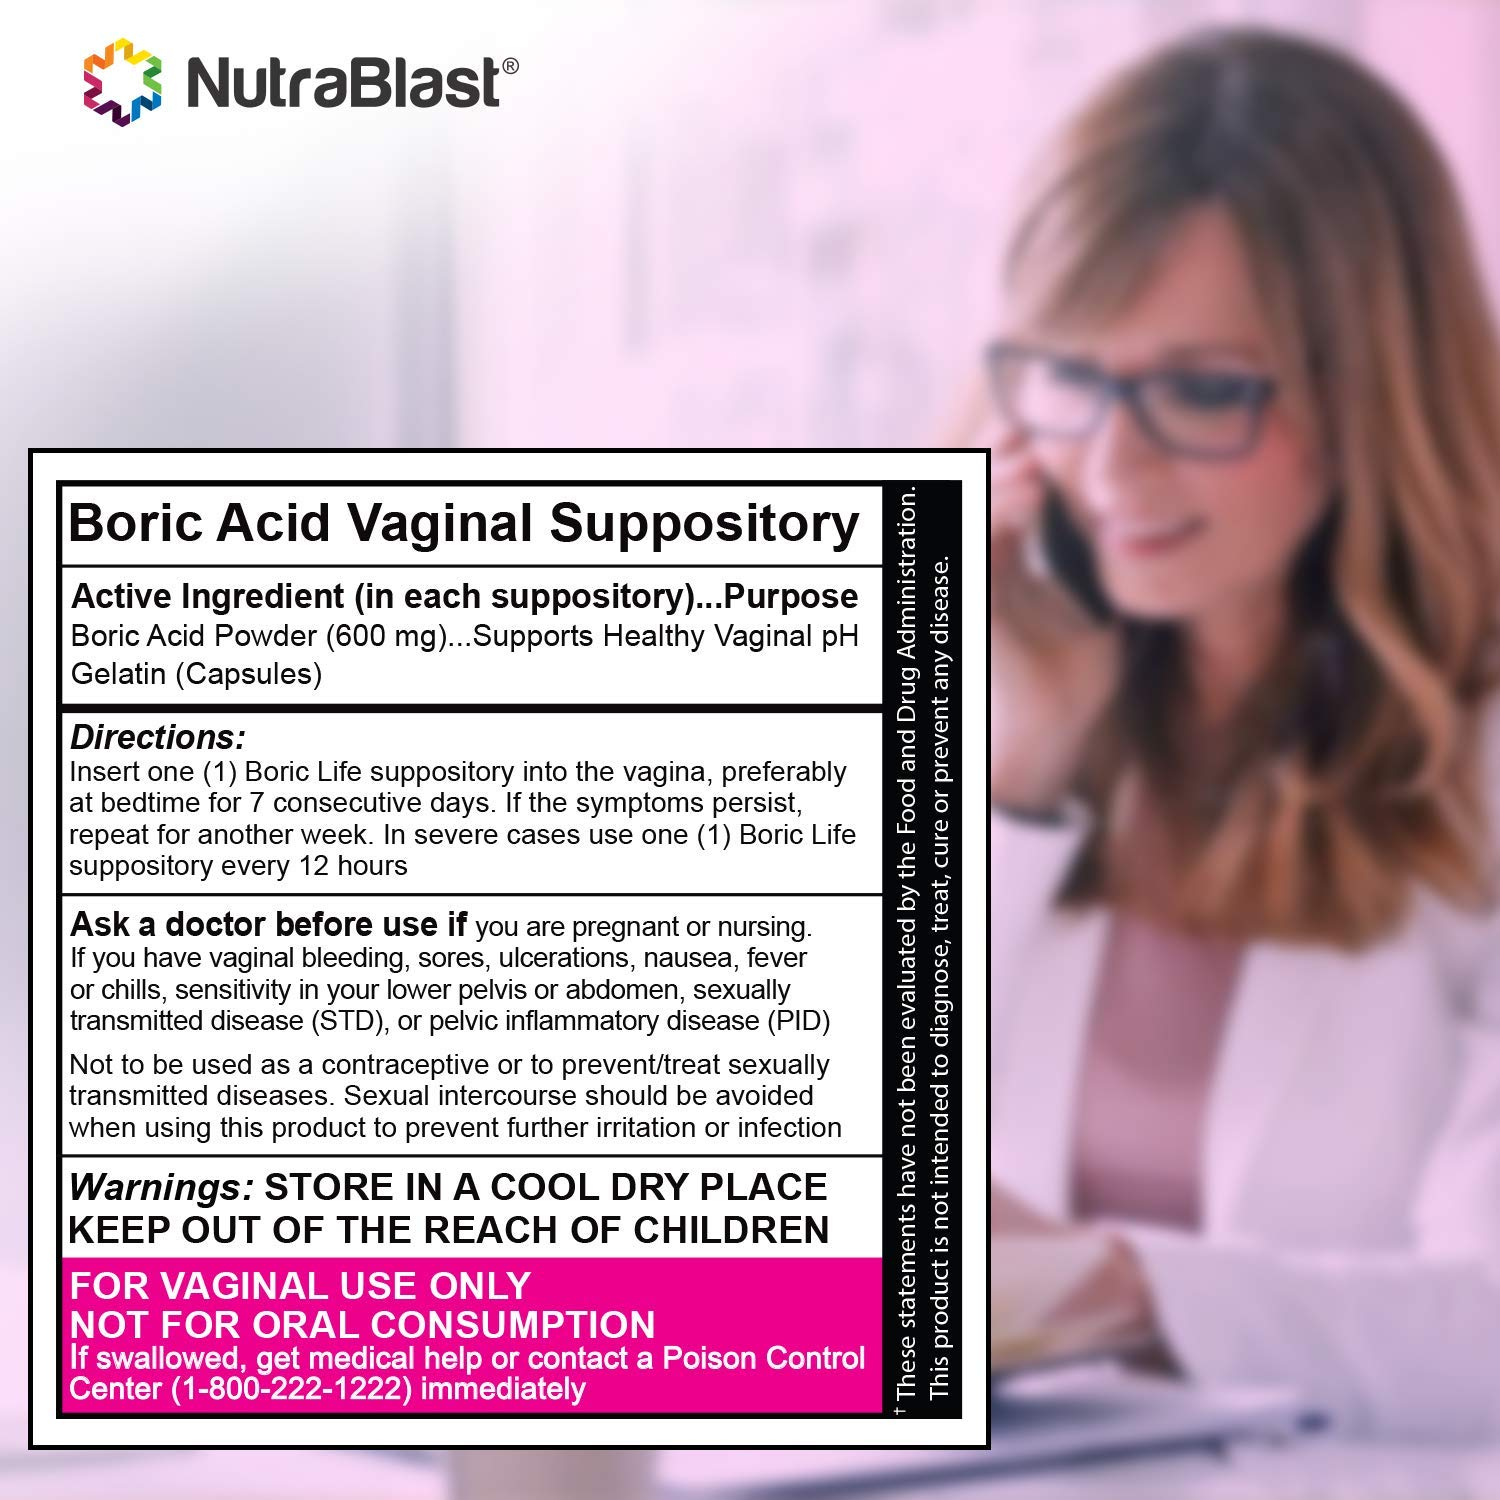 NutraBlast Boric Acid Vaginal Suppositories - 60 Count, 600mg - 100% Pure Made in USA - Boric Life Intimate Health Support by NutraBlast